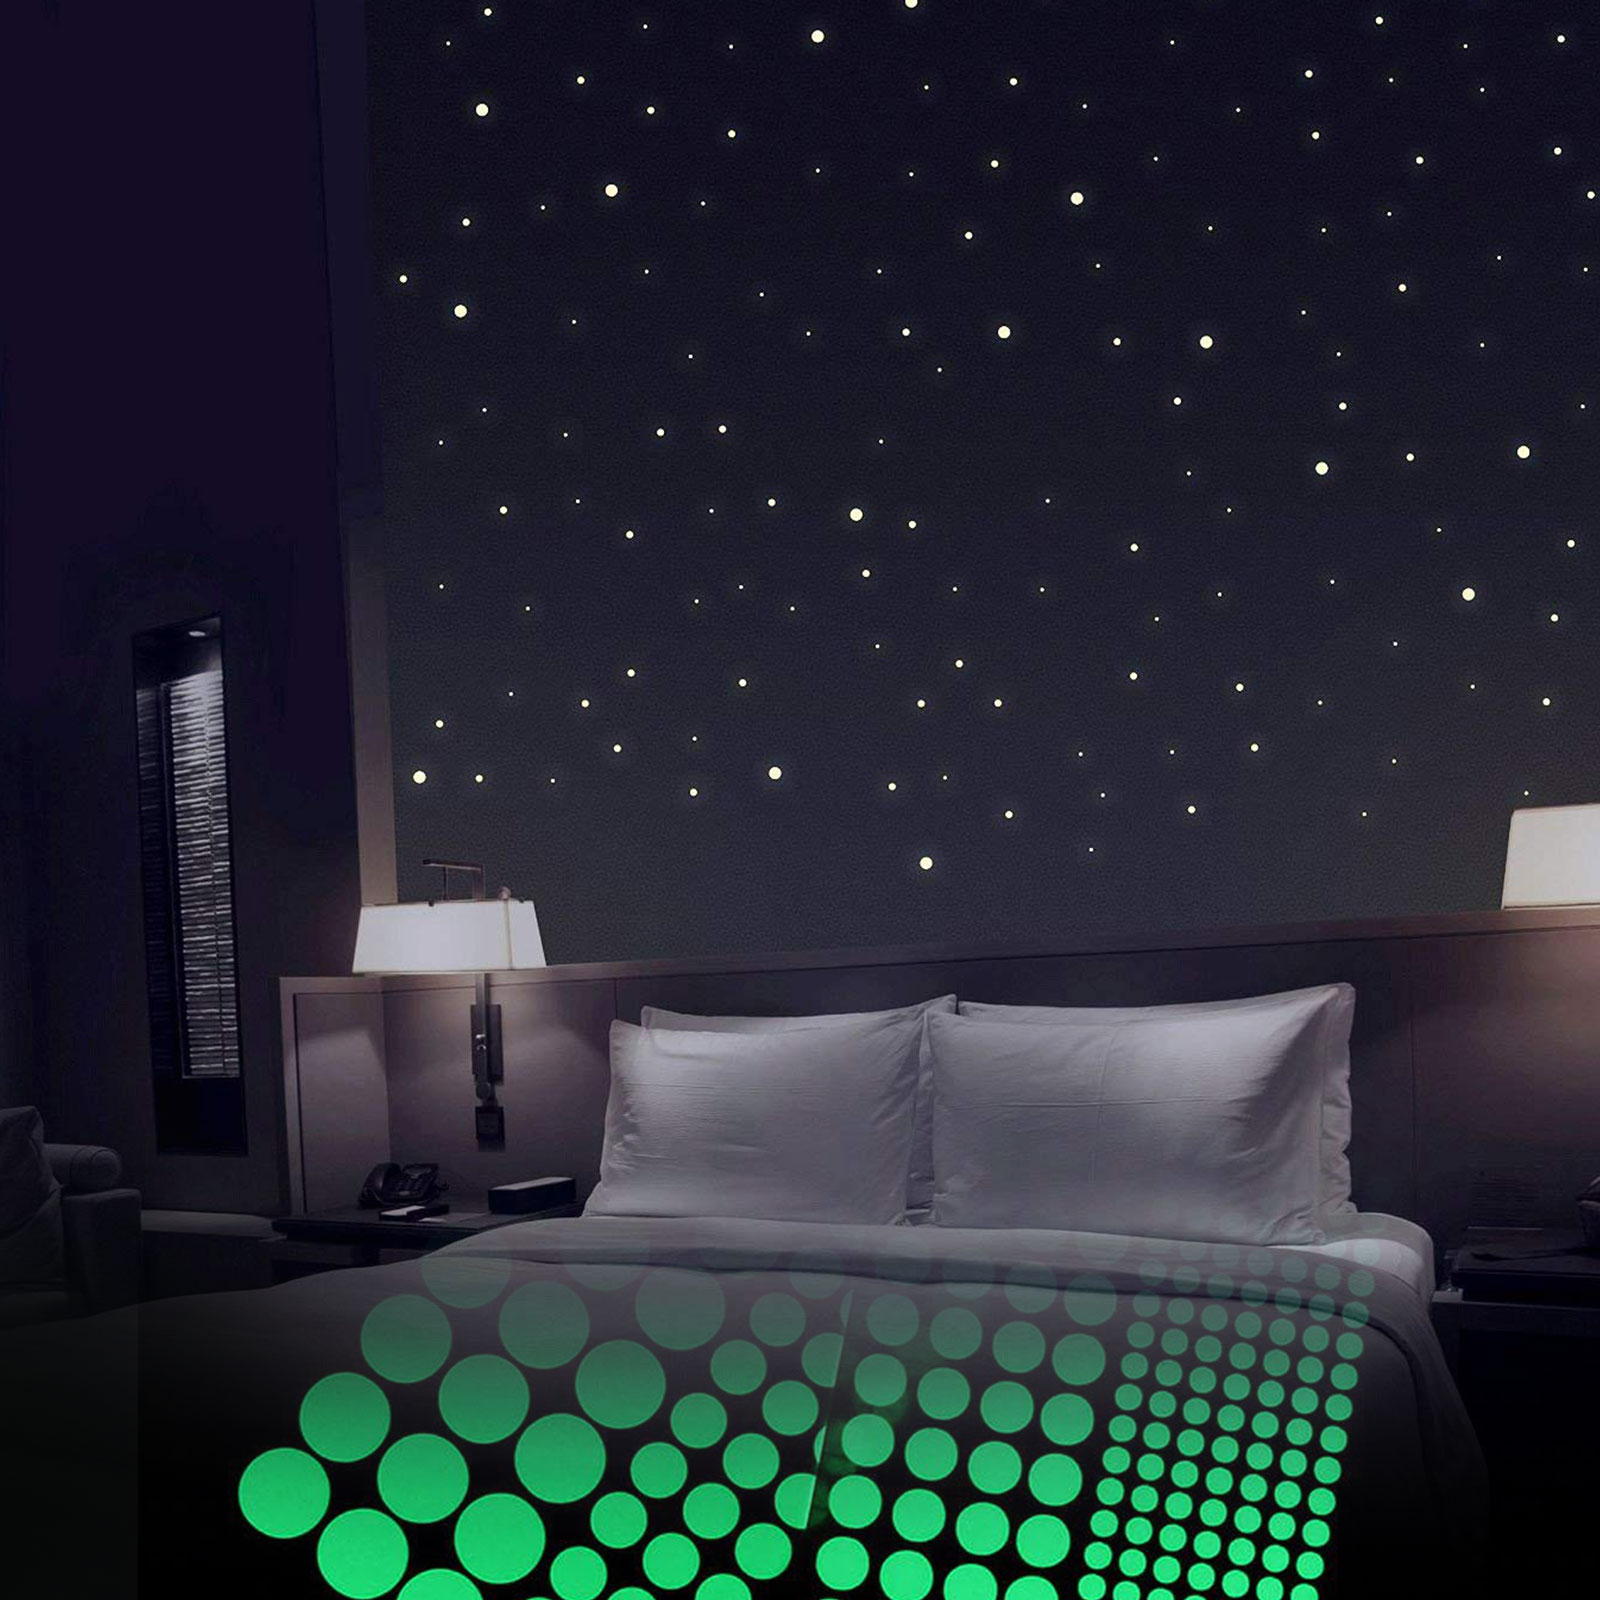 Details About 400pcs Wall Glow In The Dark Stars Stickers Baby Kids Nursery Bed Room Ceiling